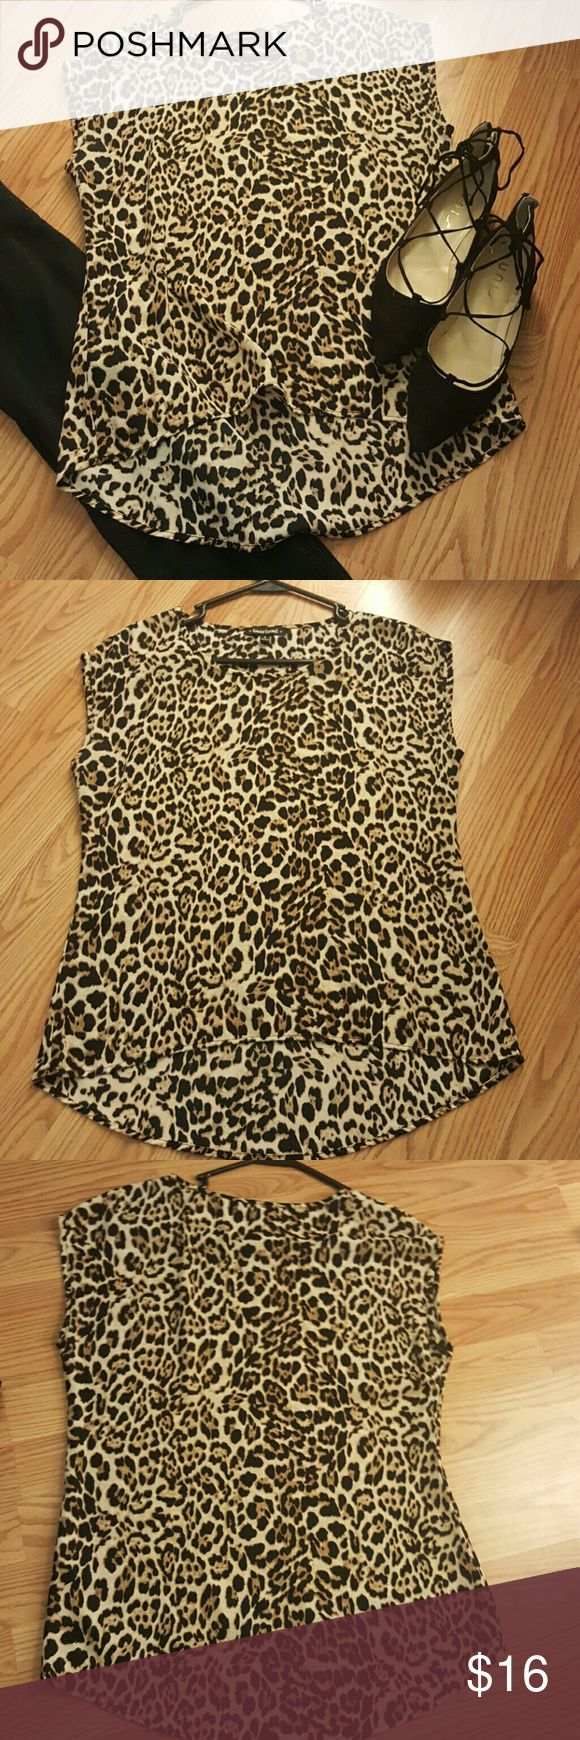 Cheetah print short sleeved shirt Small, cheetah print short sleeved shirt, perfect shirt to dress up for a night on the town or to dress down for a more casual look. HeartSoul Tops Blouses